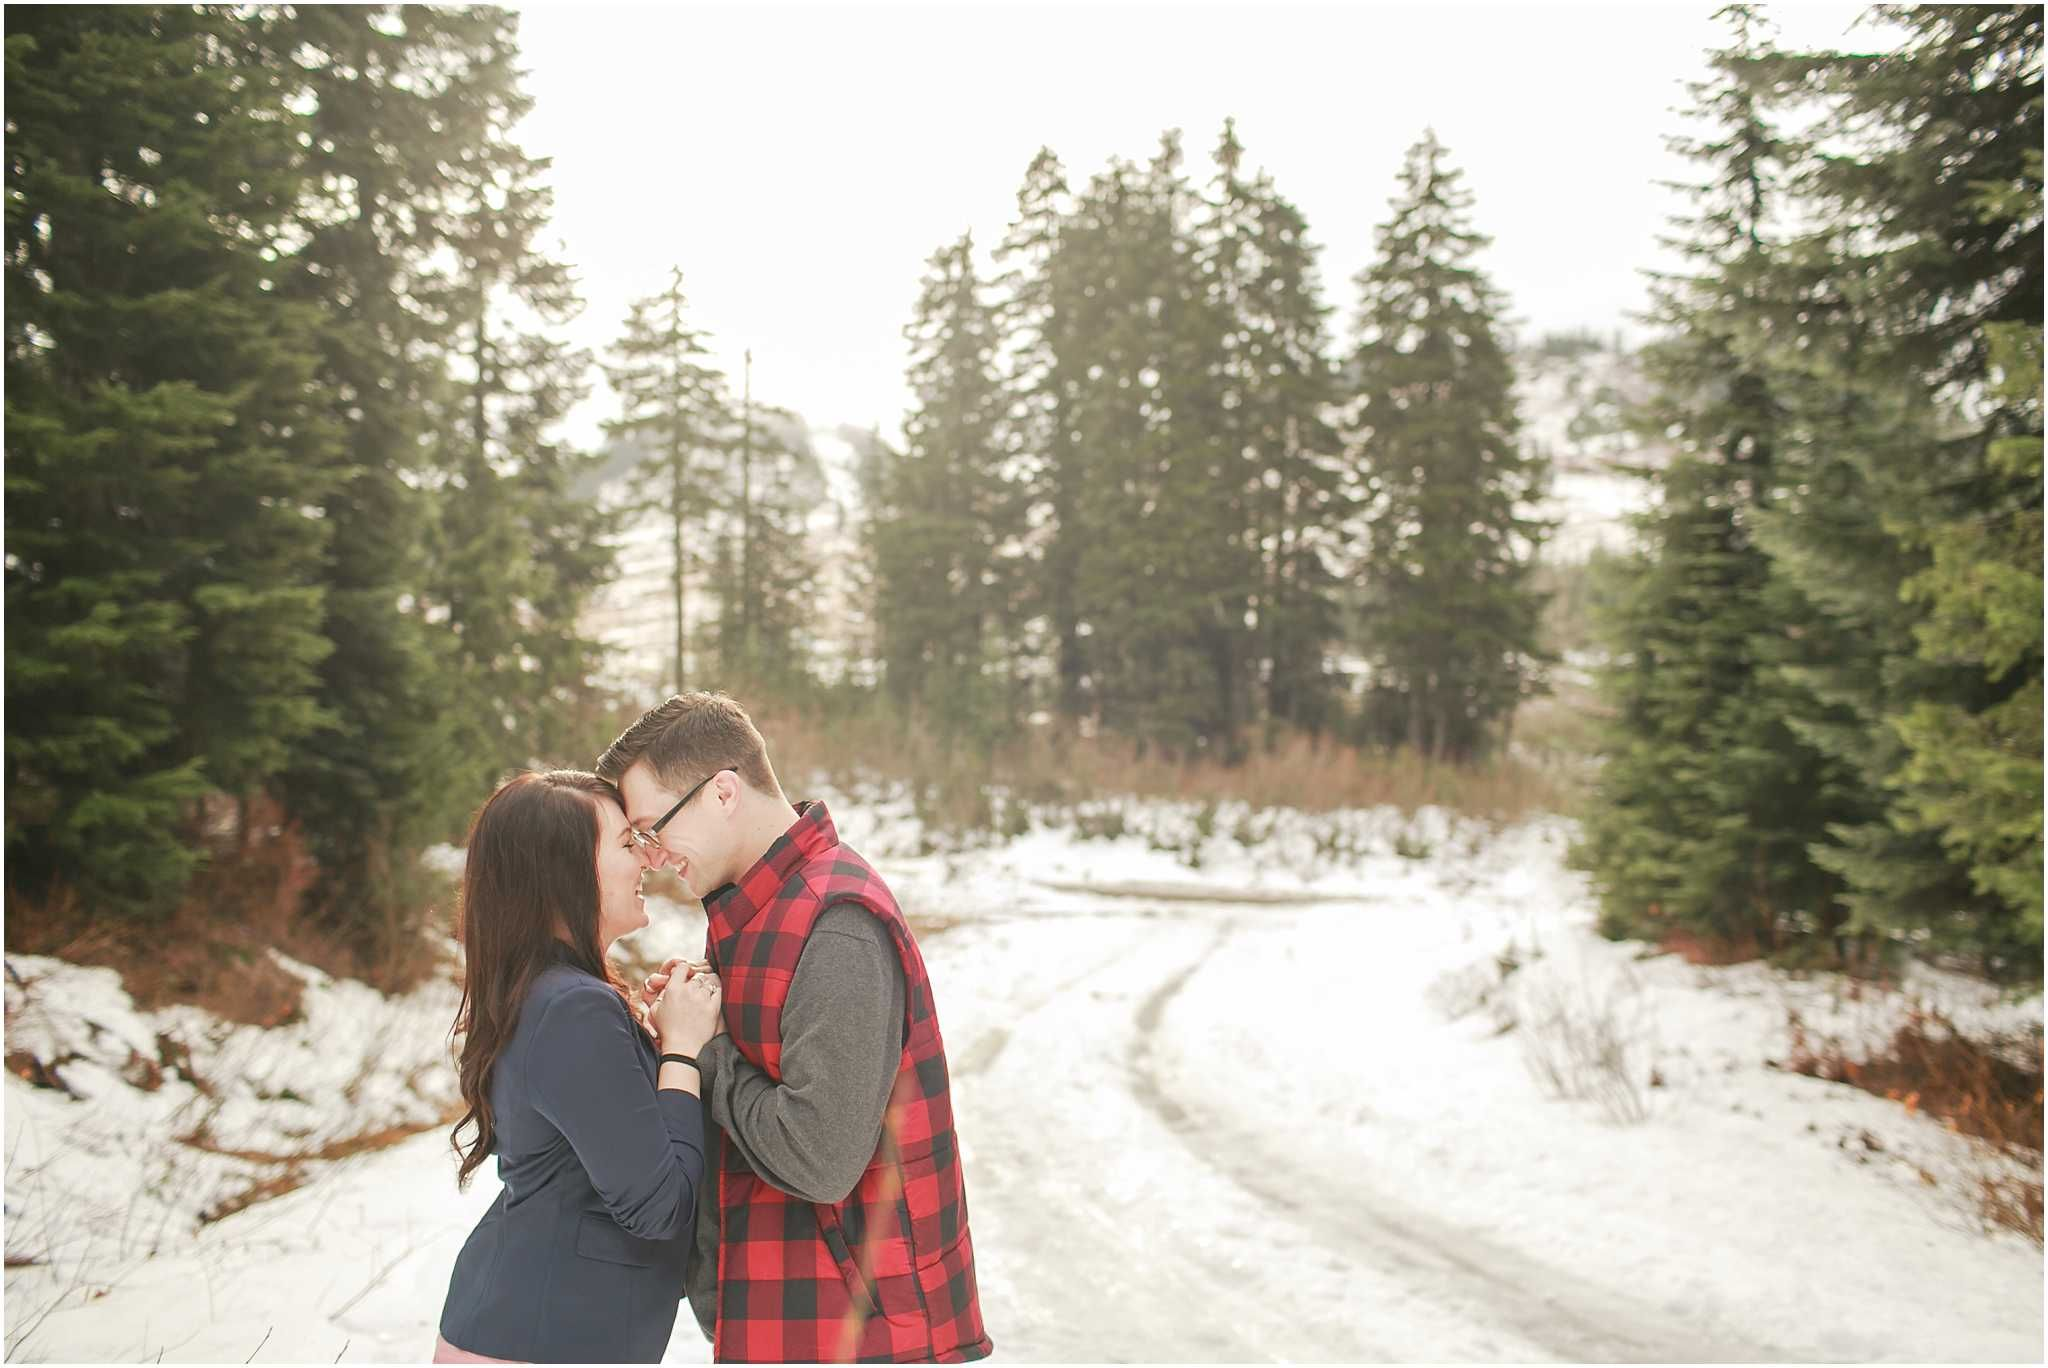 Chelsea and Todd | Snowy Alpental Engagement Session